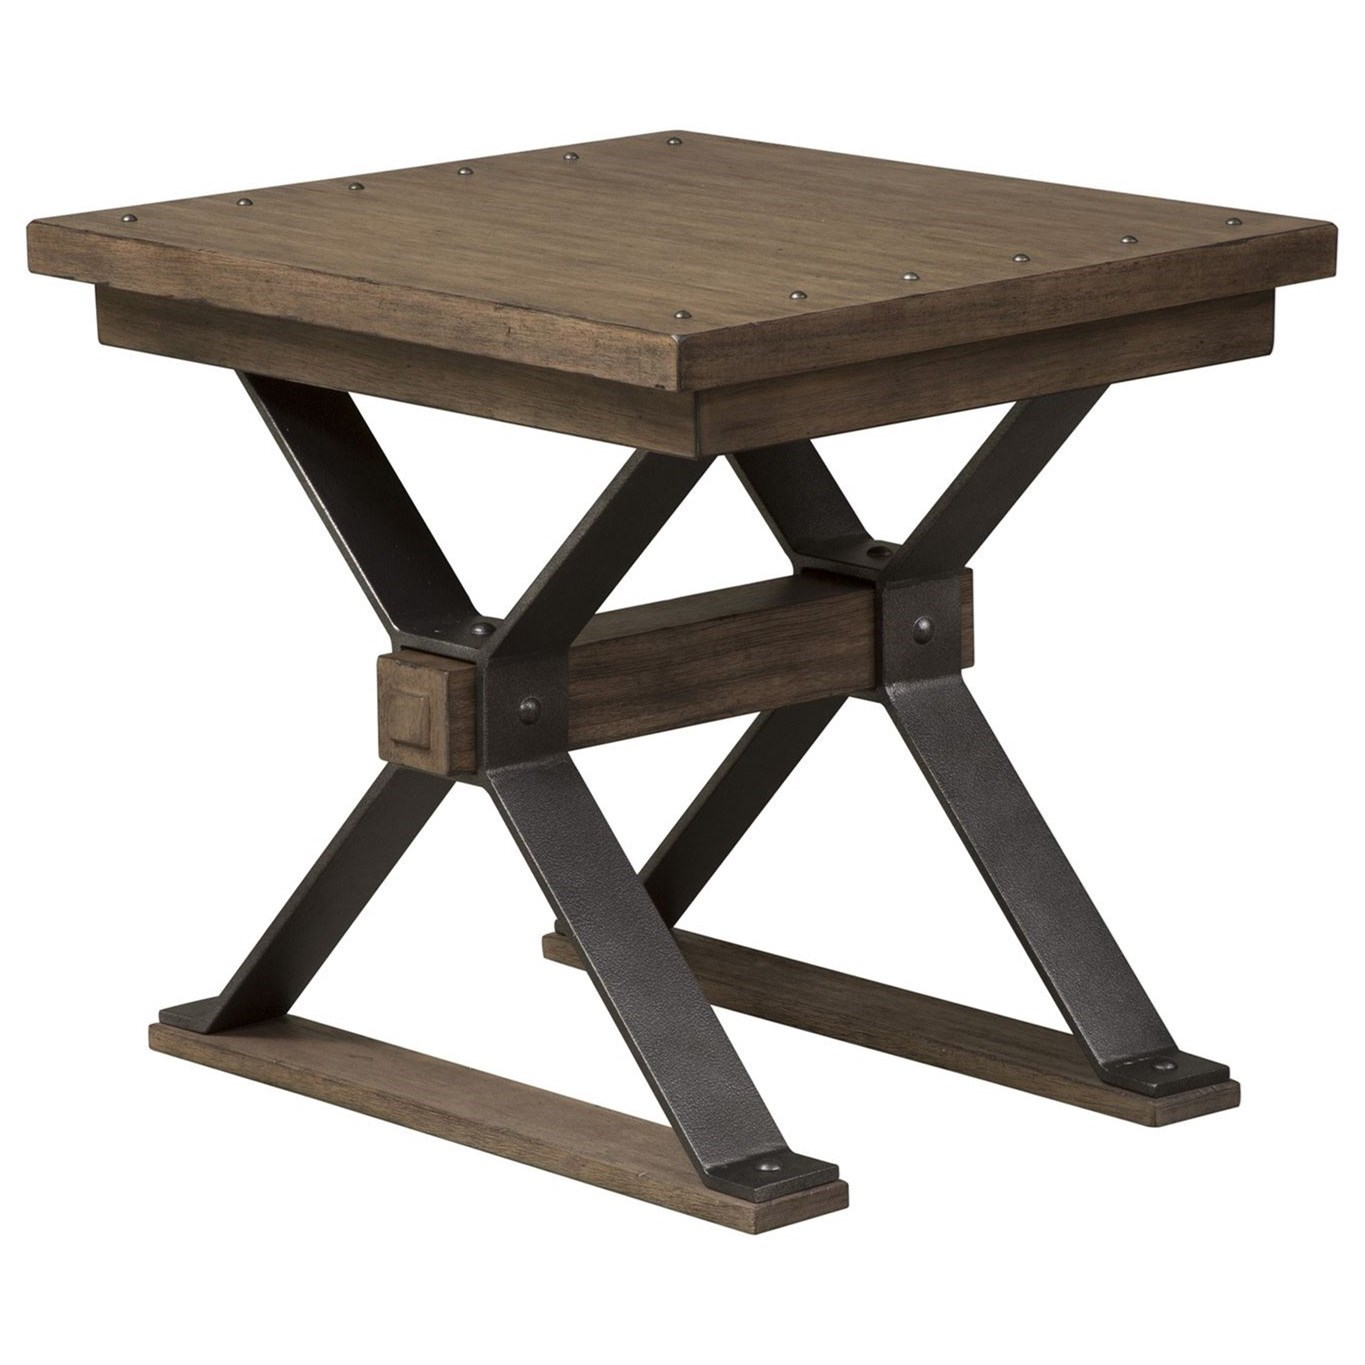 Sonoma Road End Table by Liberty Furniture at Rooms for Less